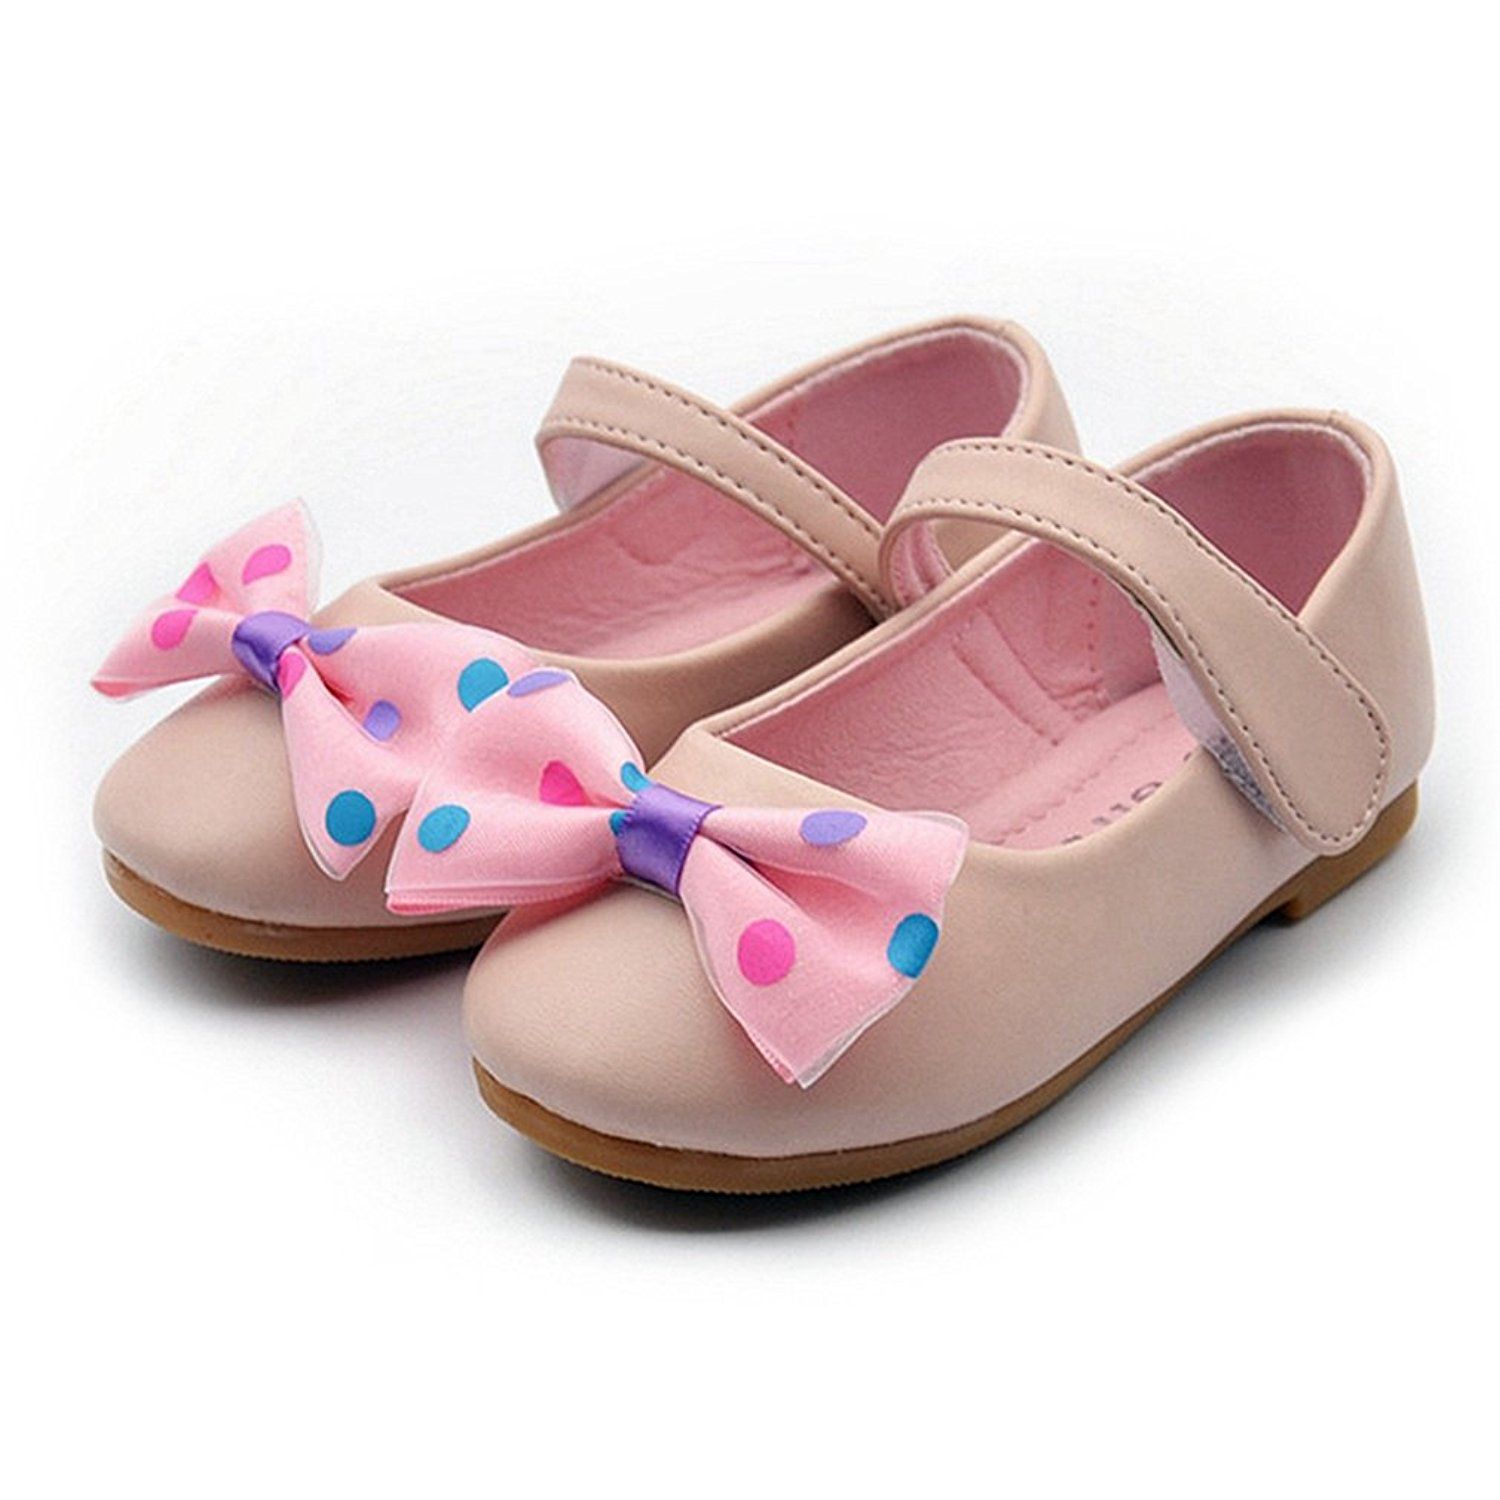 360c9235b471 Get Quotations · Kids Girls Bowknot Ballerina Flats Soft PU Leather Cute  Dressy Mary Jane Shoes (Toddler